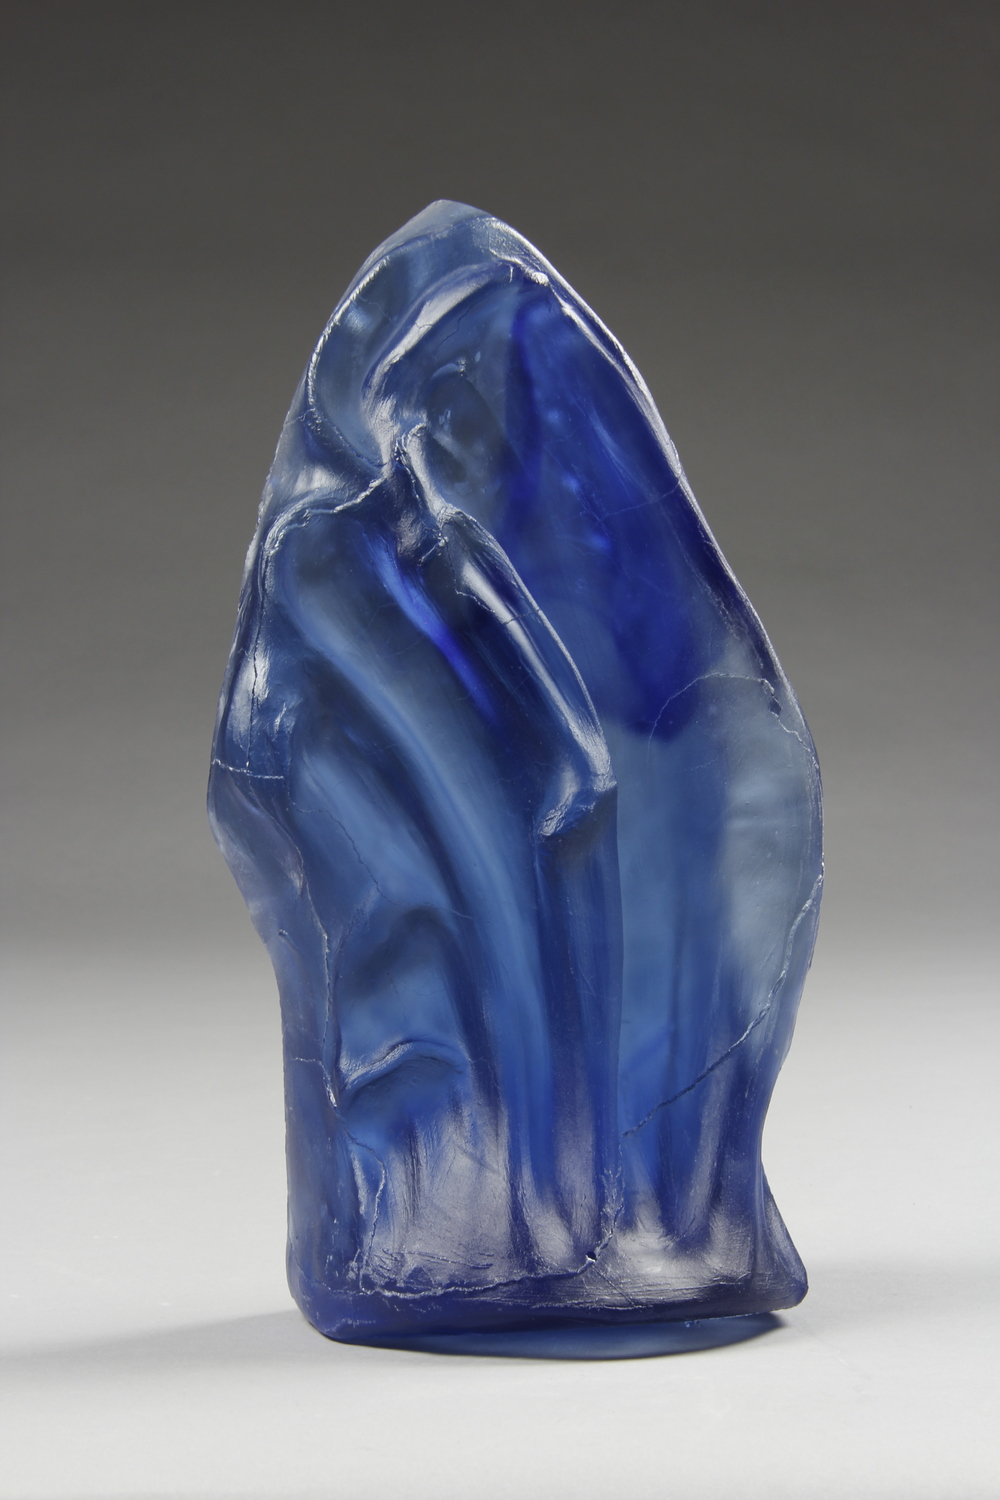 1302_cast_glass_sculpture_020.jpg